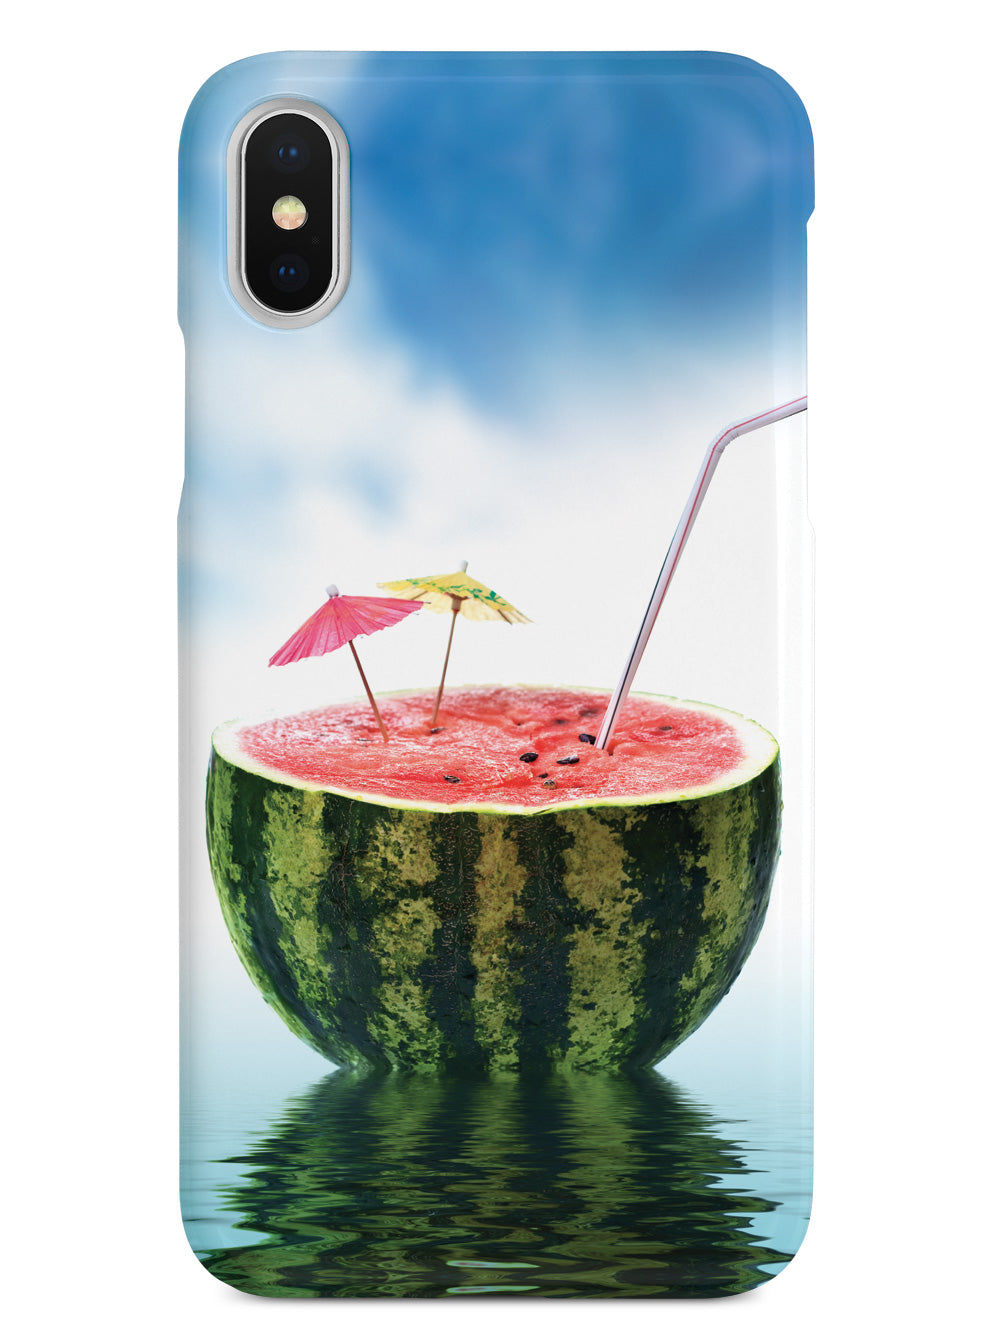 Watermelon Summer Drink - Vacation - White Case